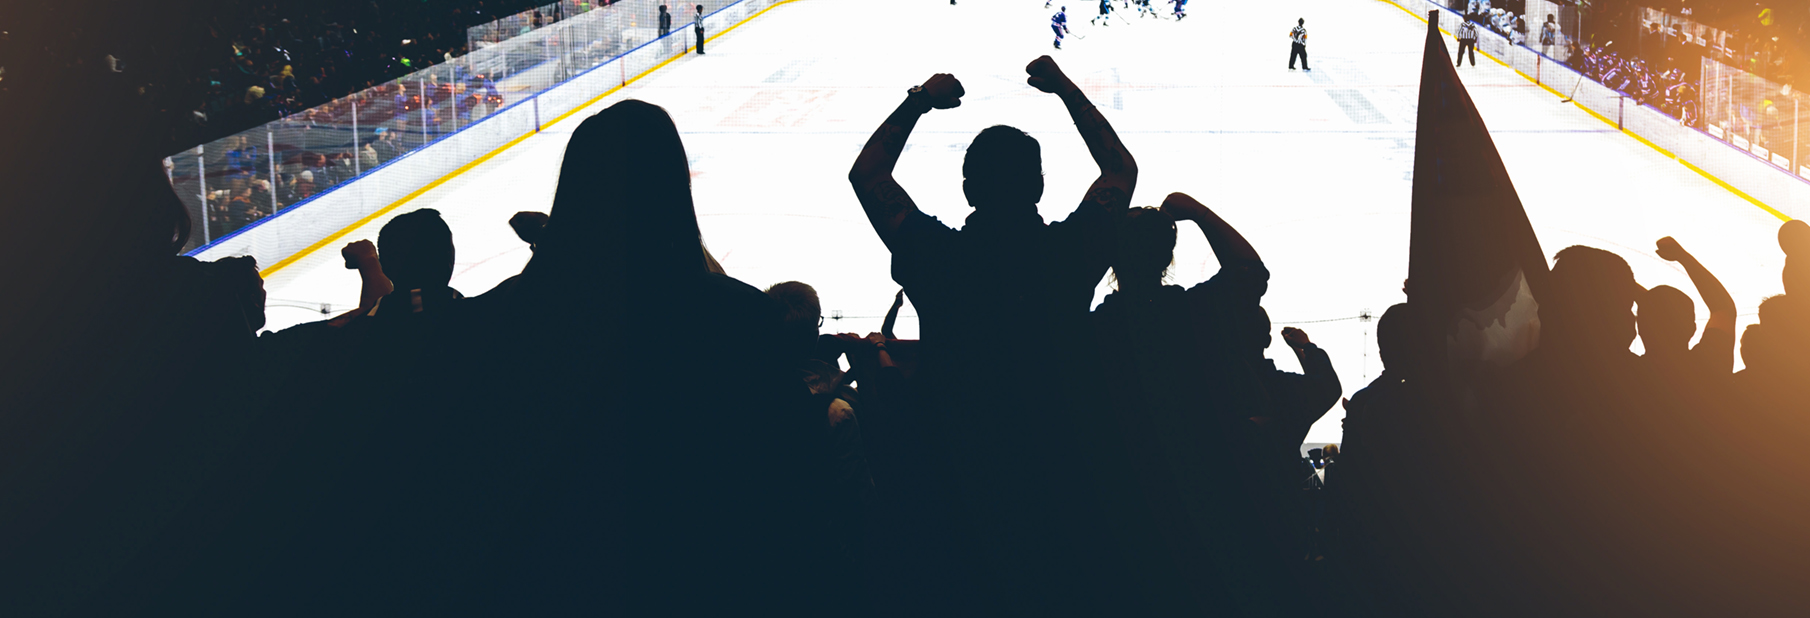 Hockey-crowd